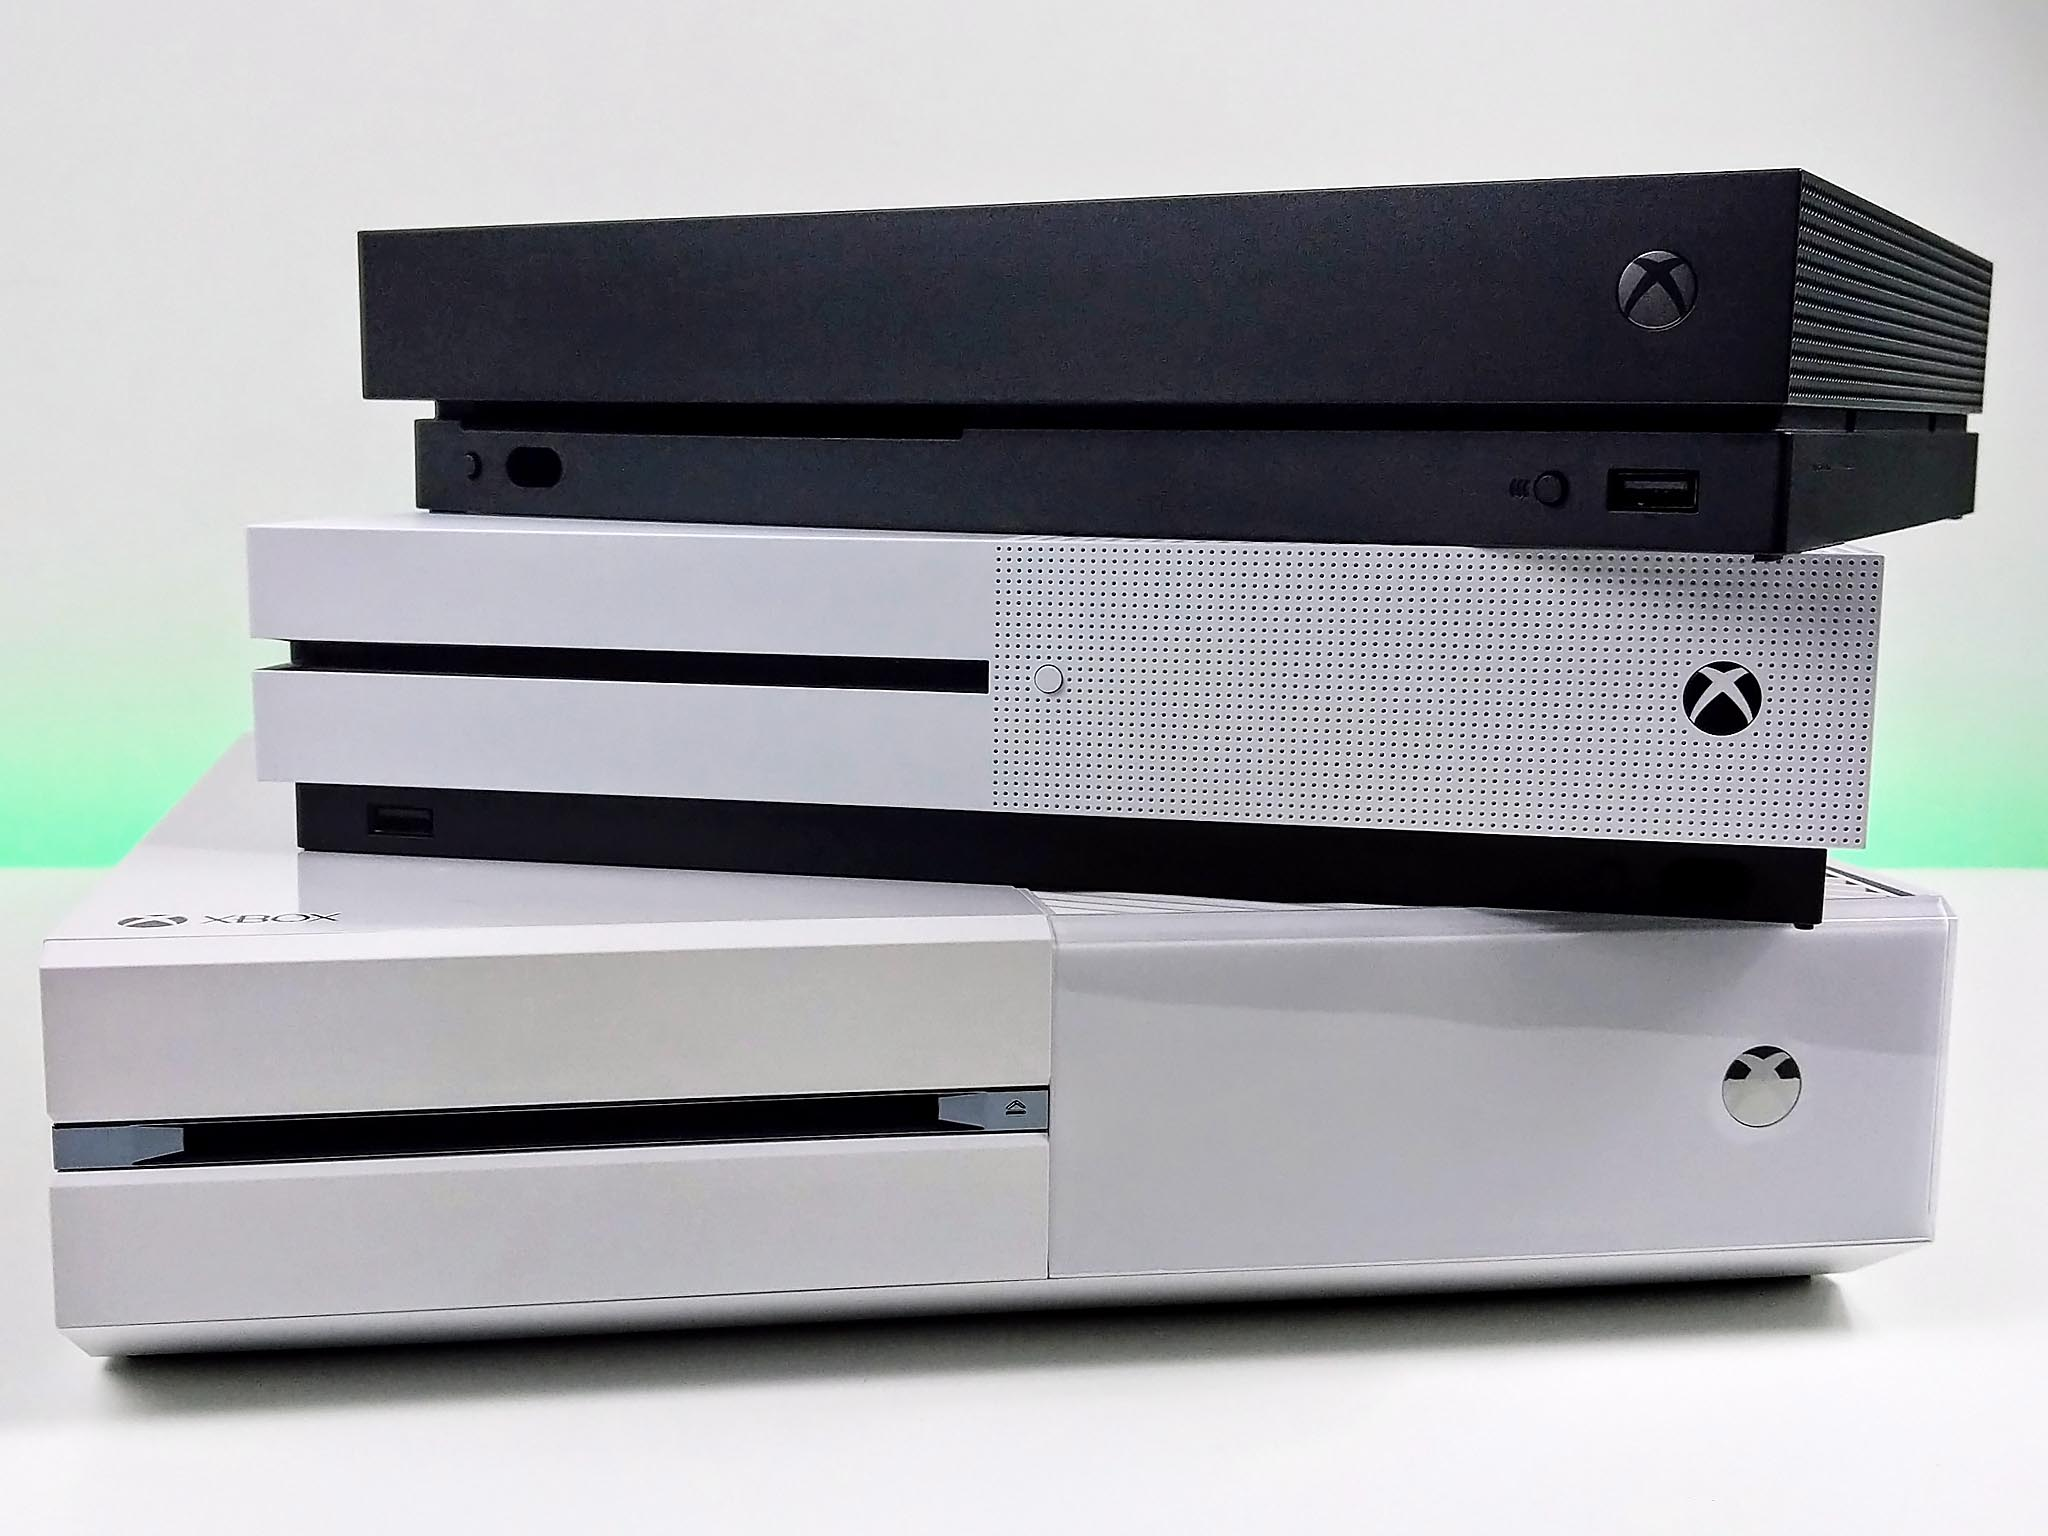 small resolution of speaking of cooling the xbox one x is never blisteringly hot to the touch when